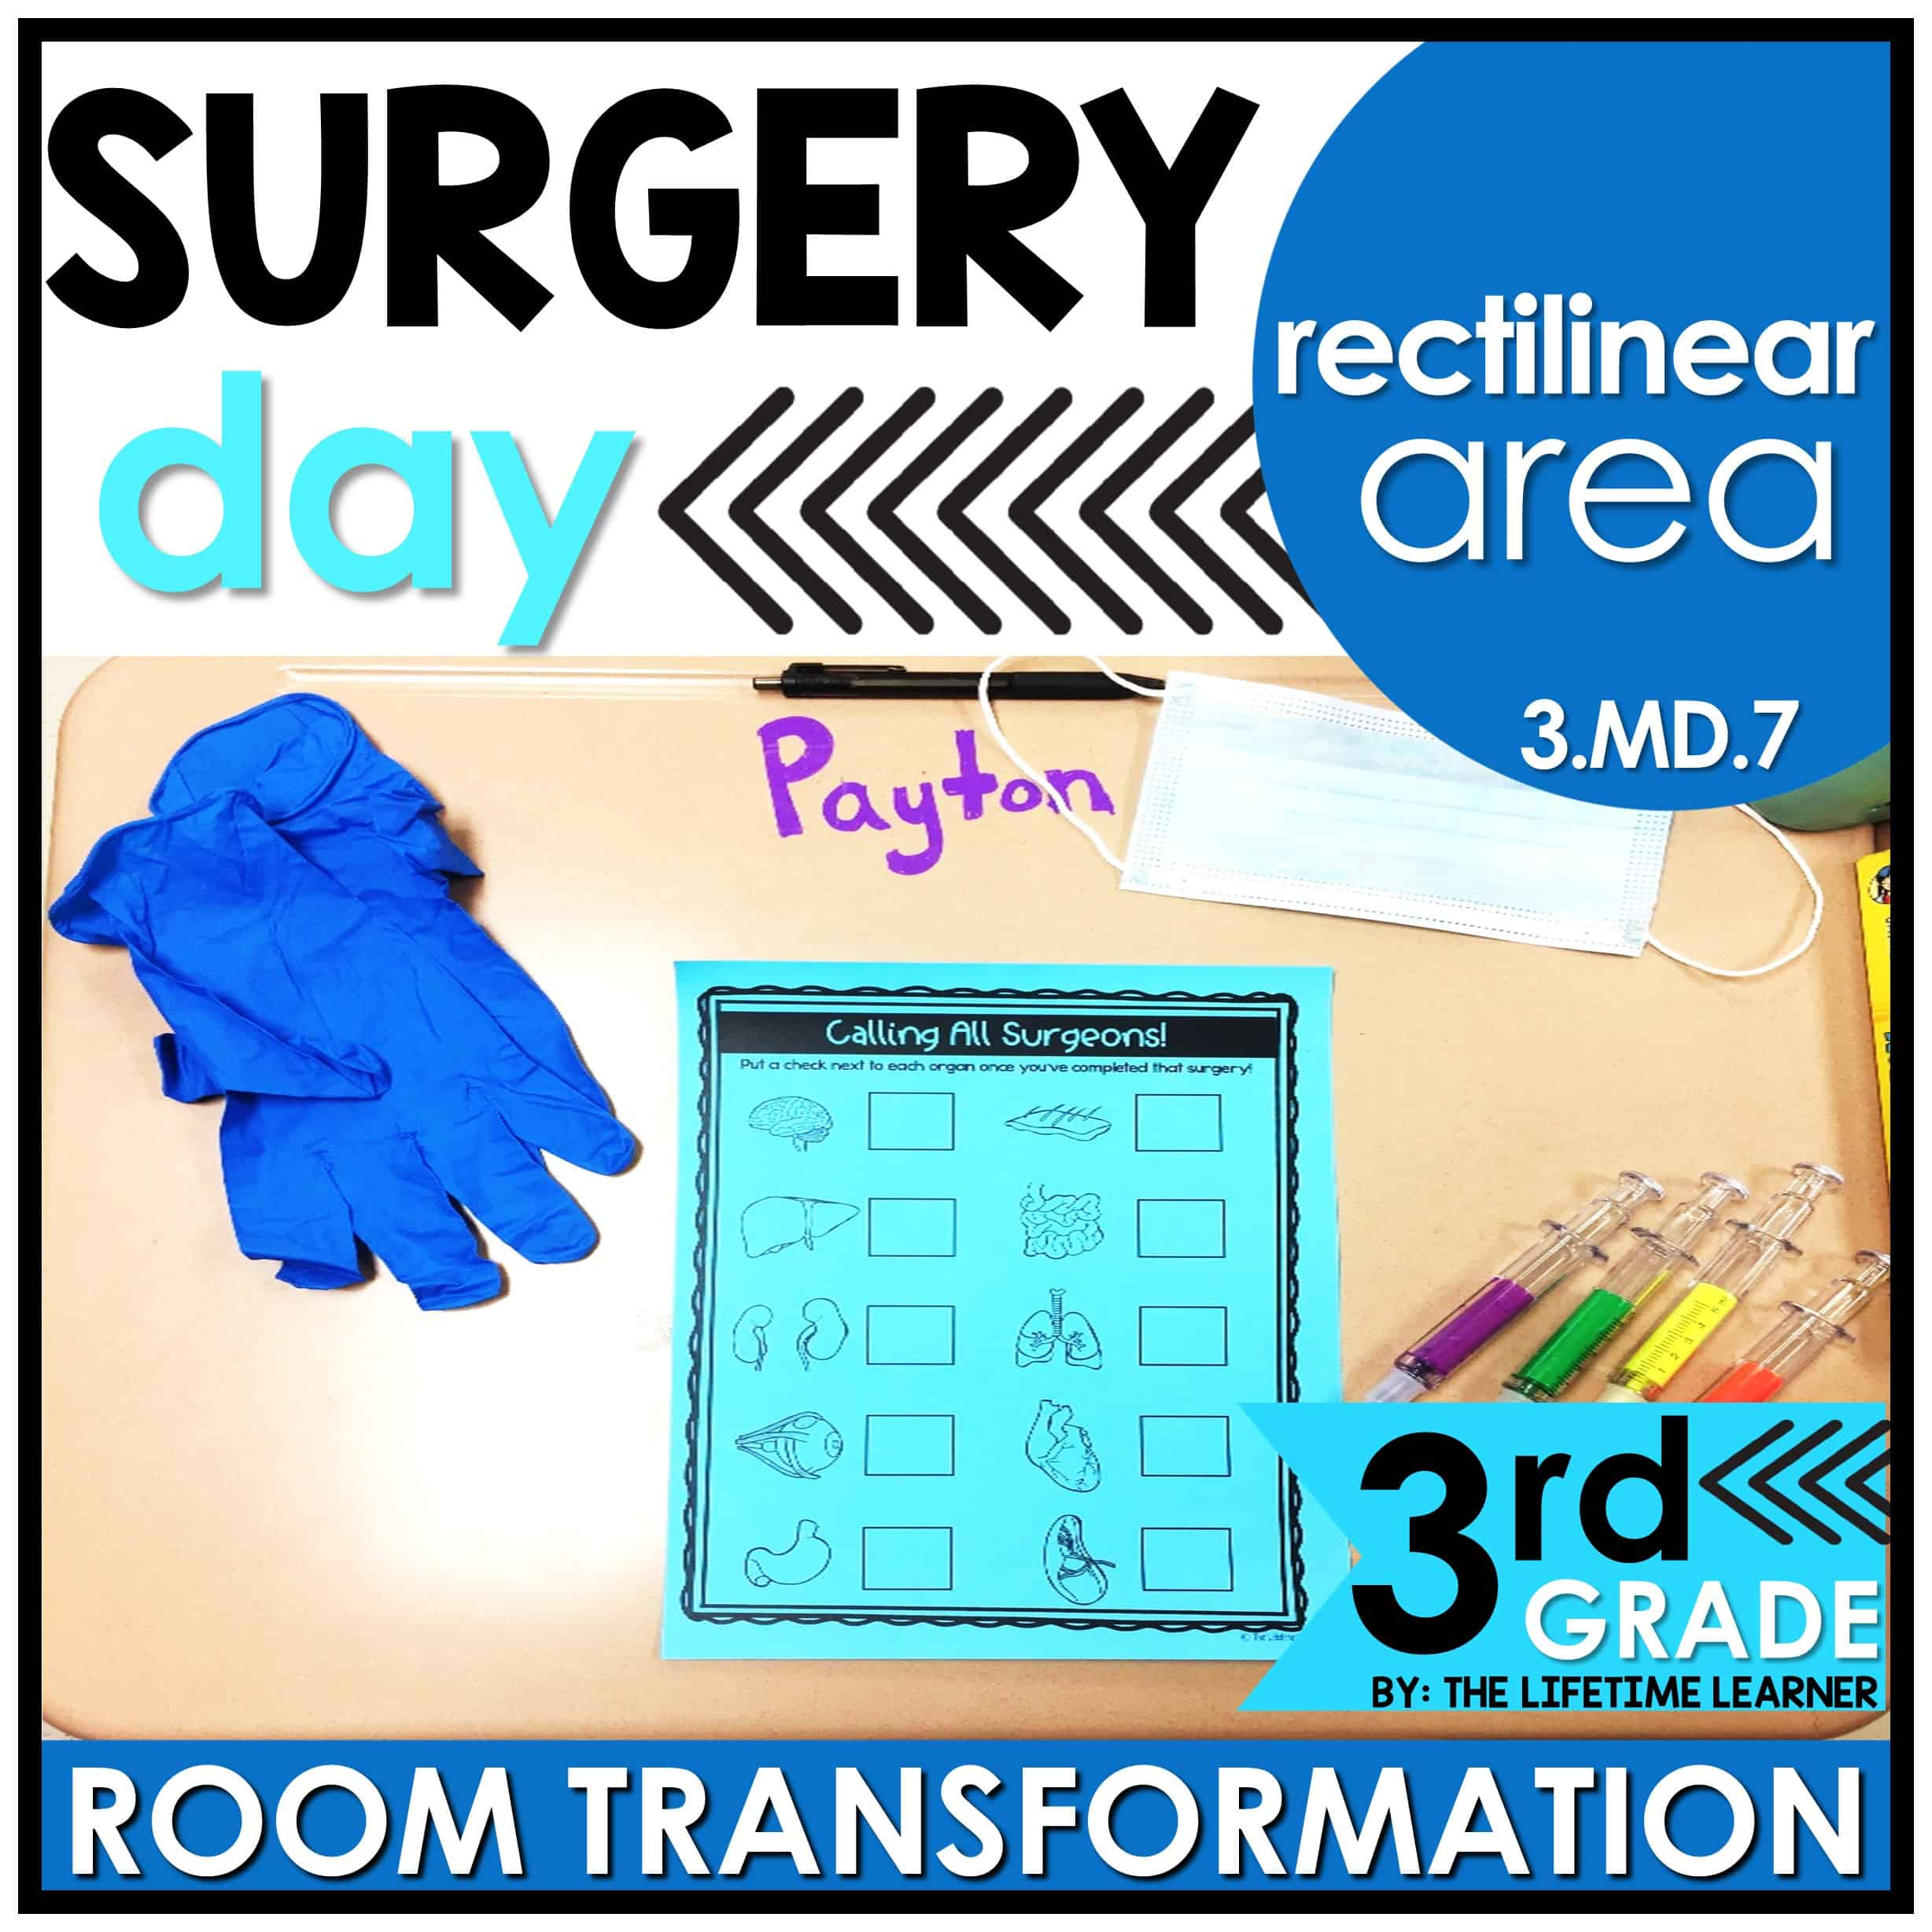 hight resolution of Rectilinear Area   Math Surgery Classroom Transformation - The Lifetime  Learner